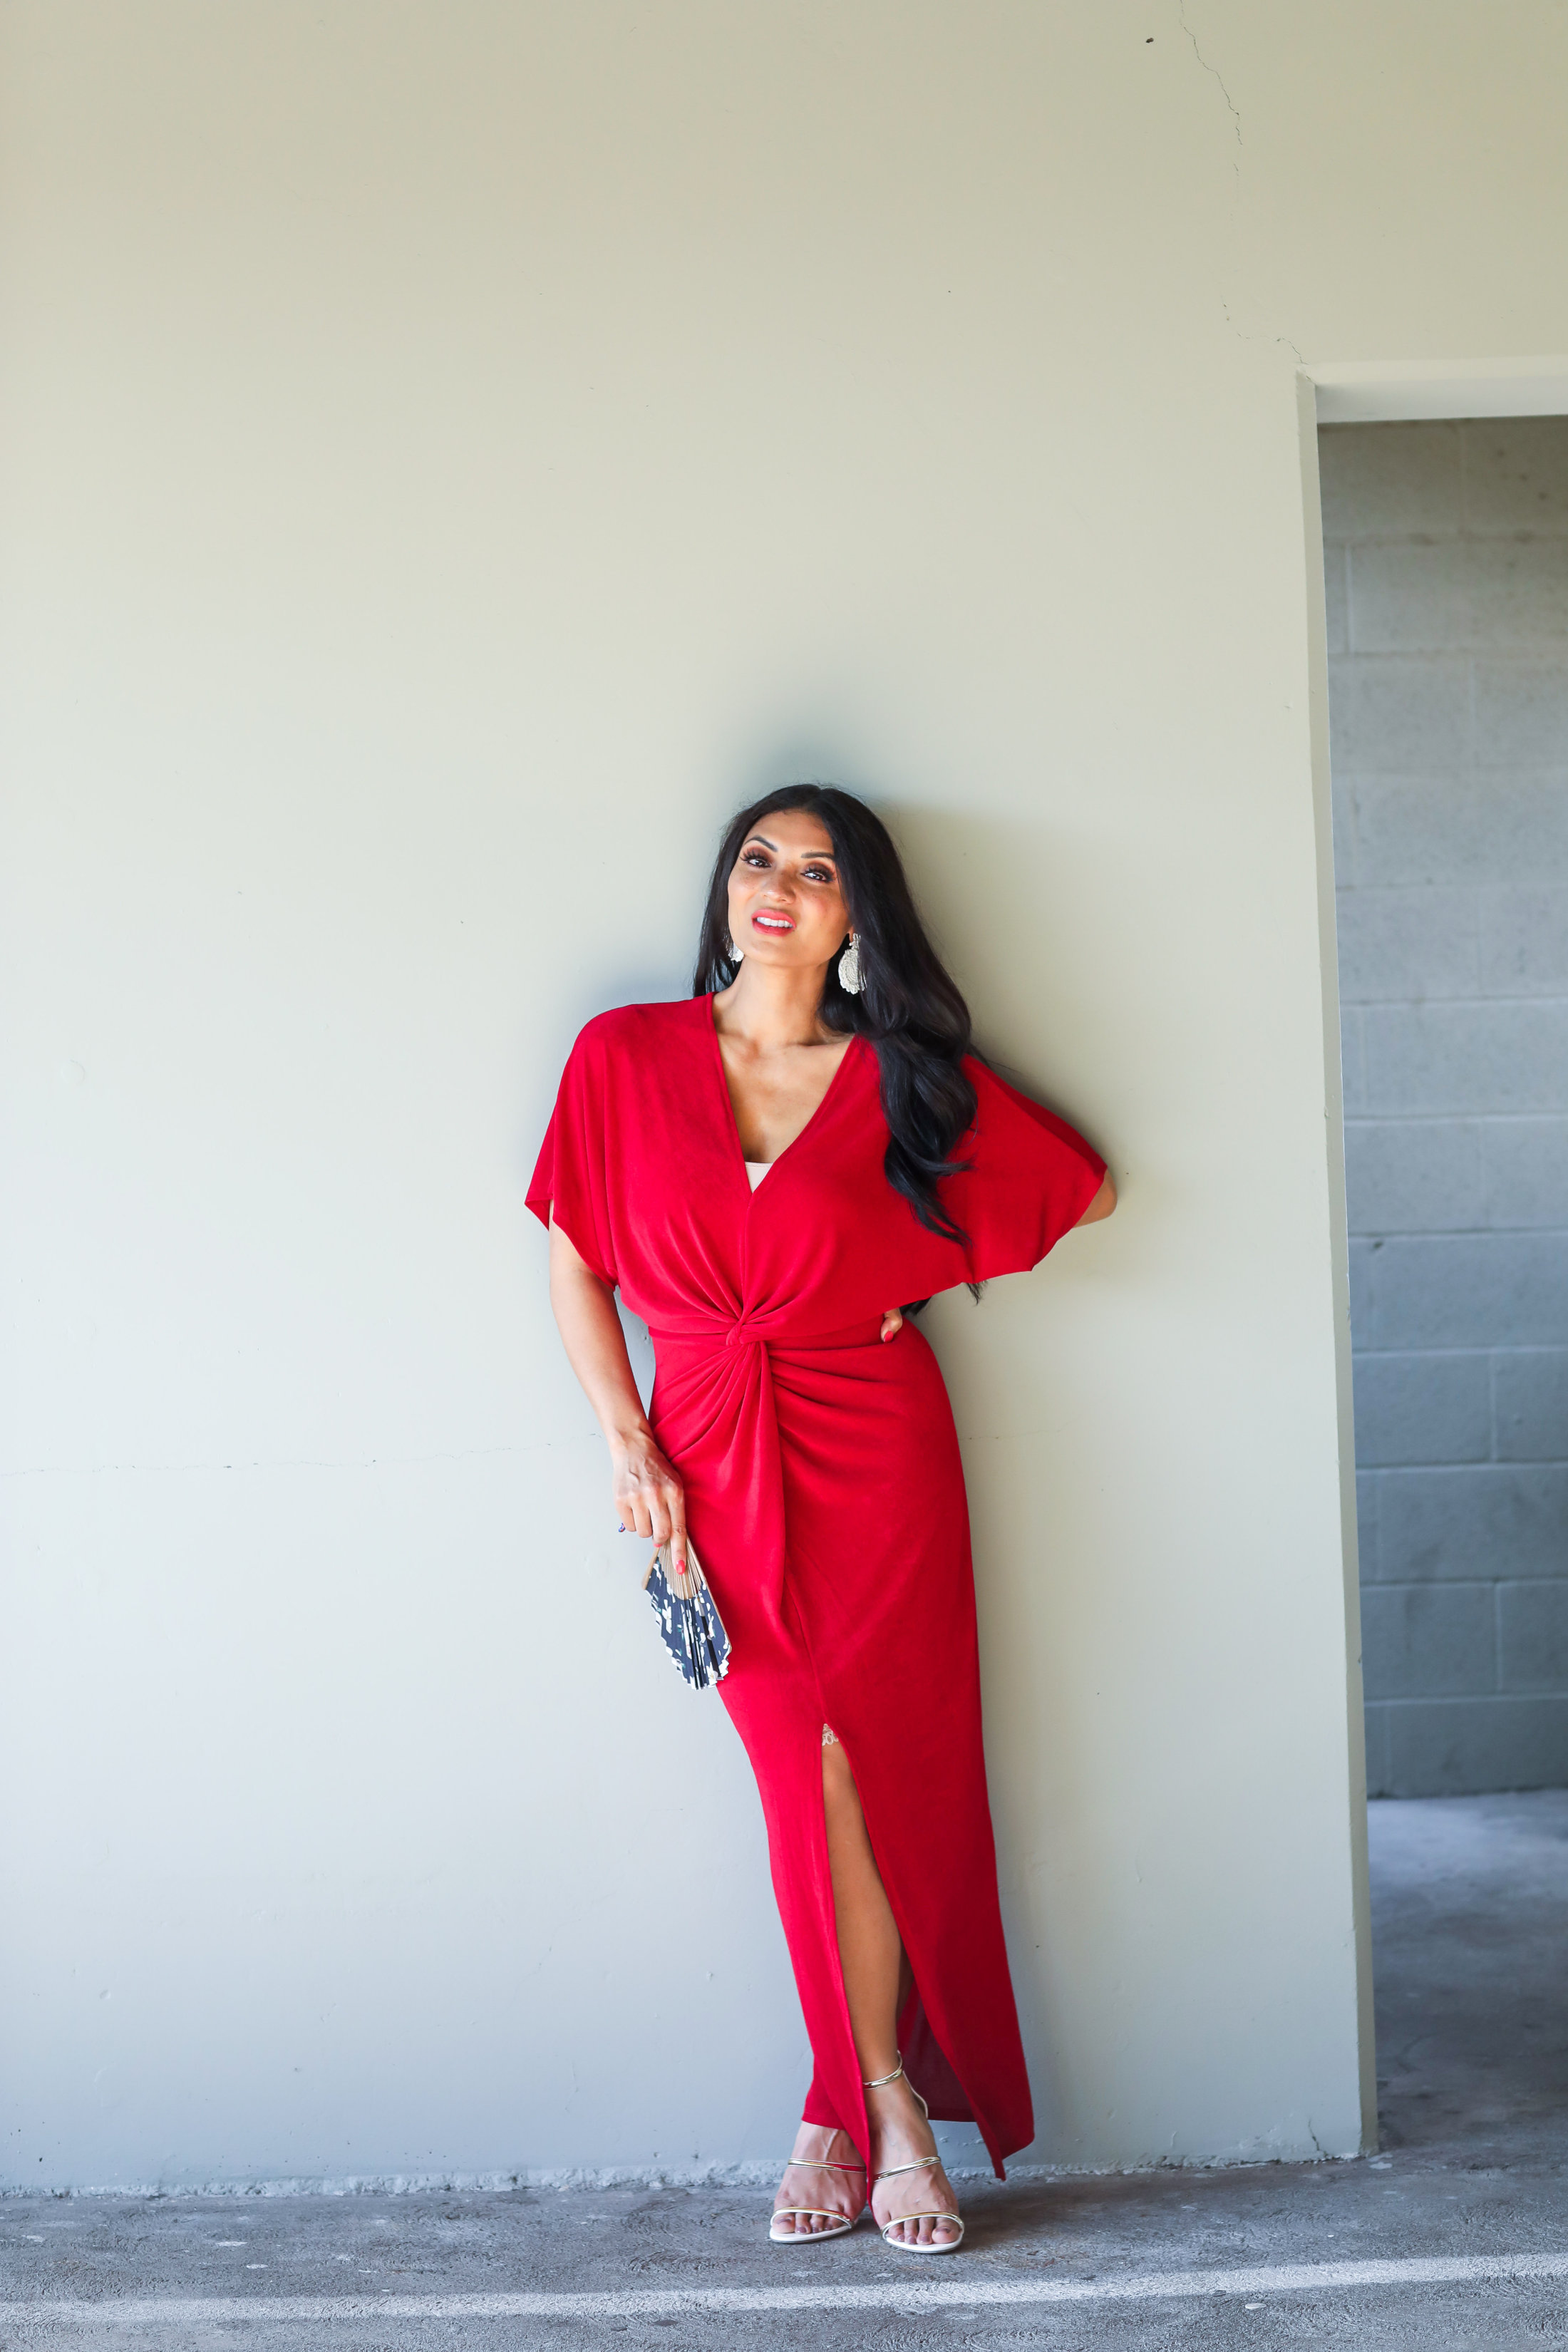 Looking for the perfect dress? Orange County Blogger Debbie Savage is sharing the one dress you need on Amazon ASAP! See it HERE!